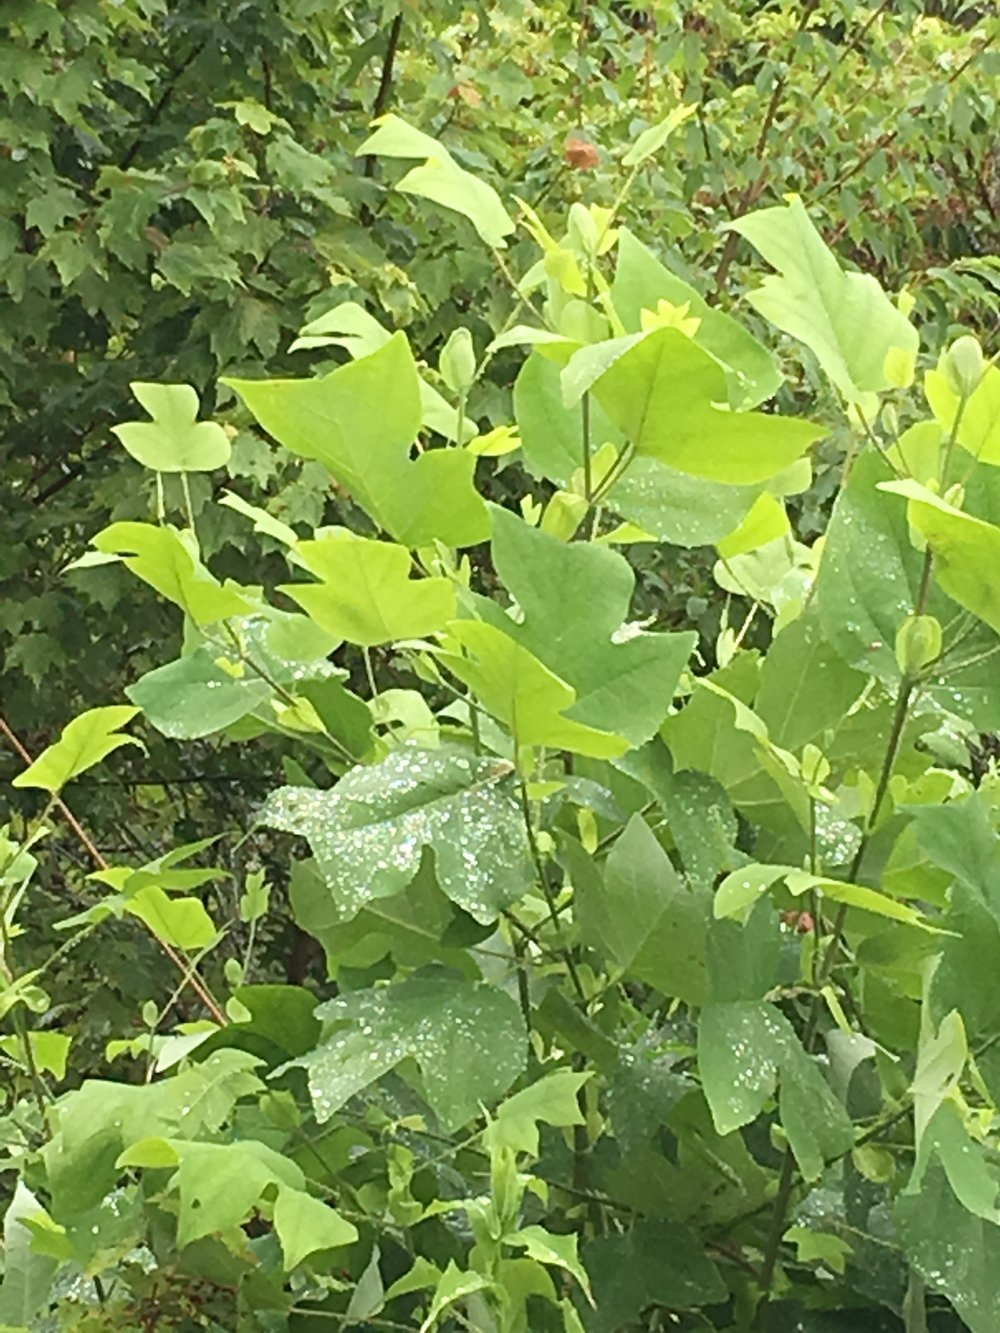 Rain-dropped leaves of the Tuliptree